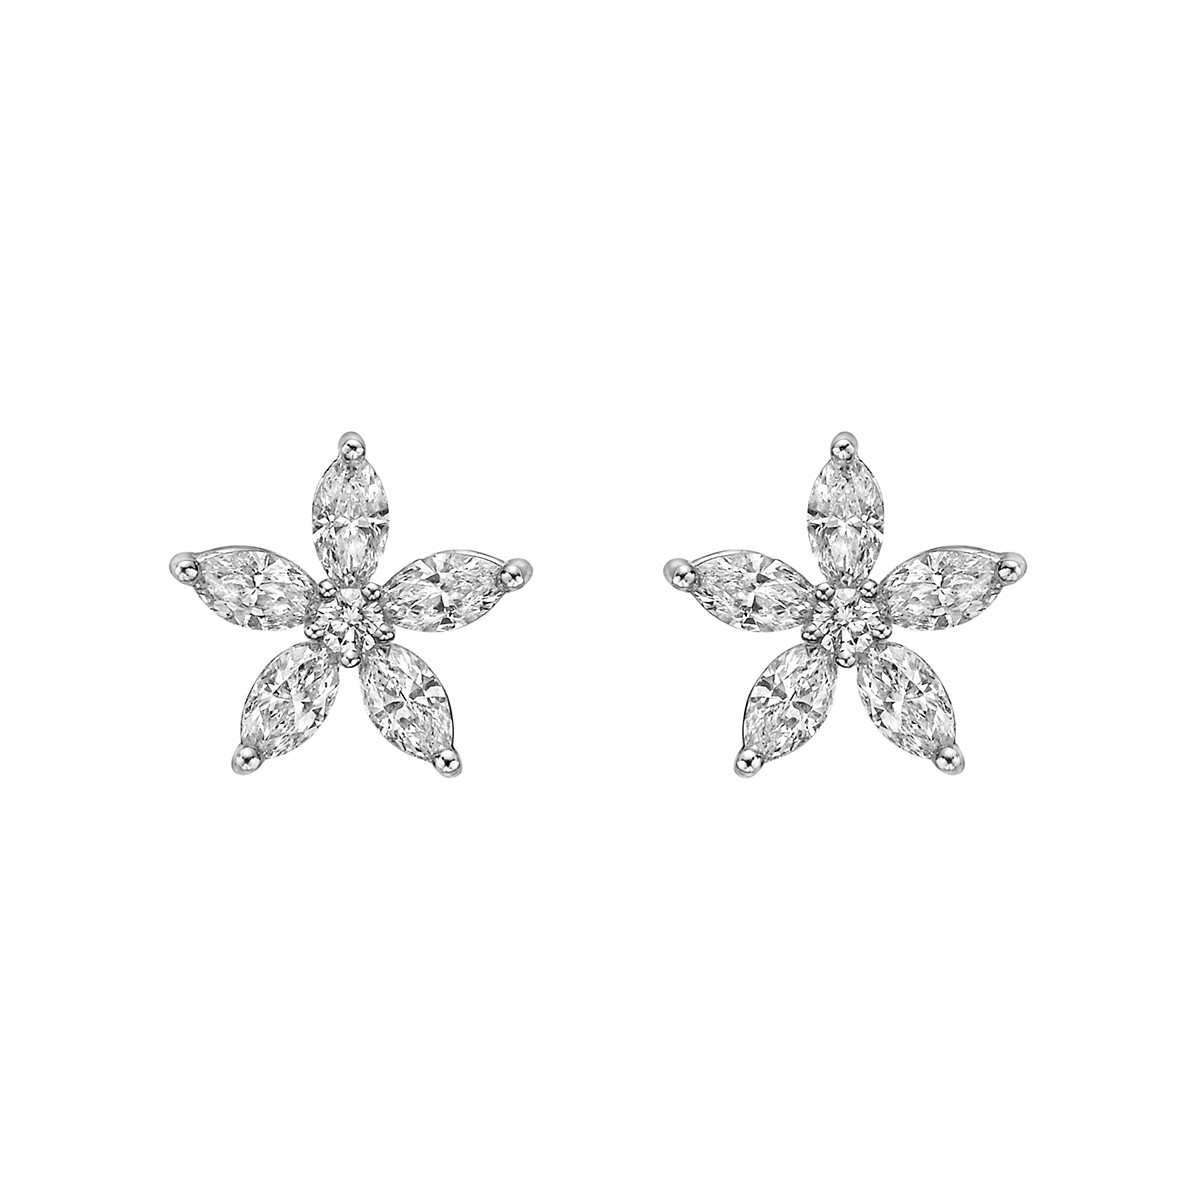 Small Diamond Flower Cluster Stud Earrings